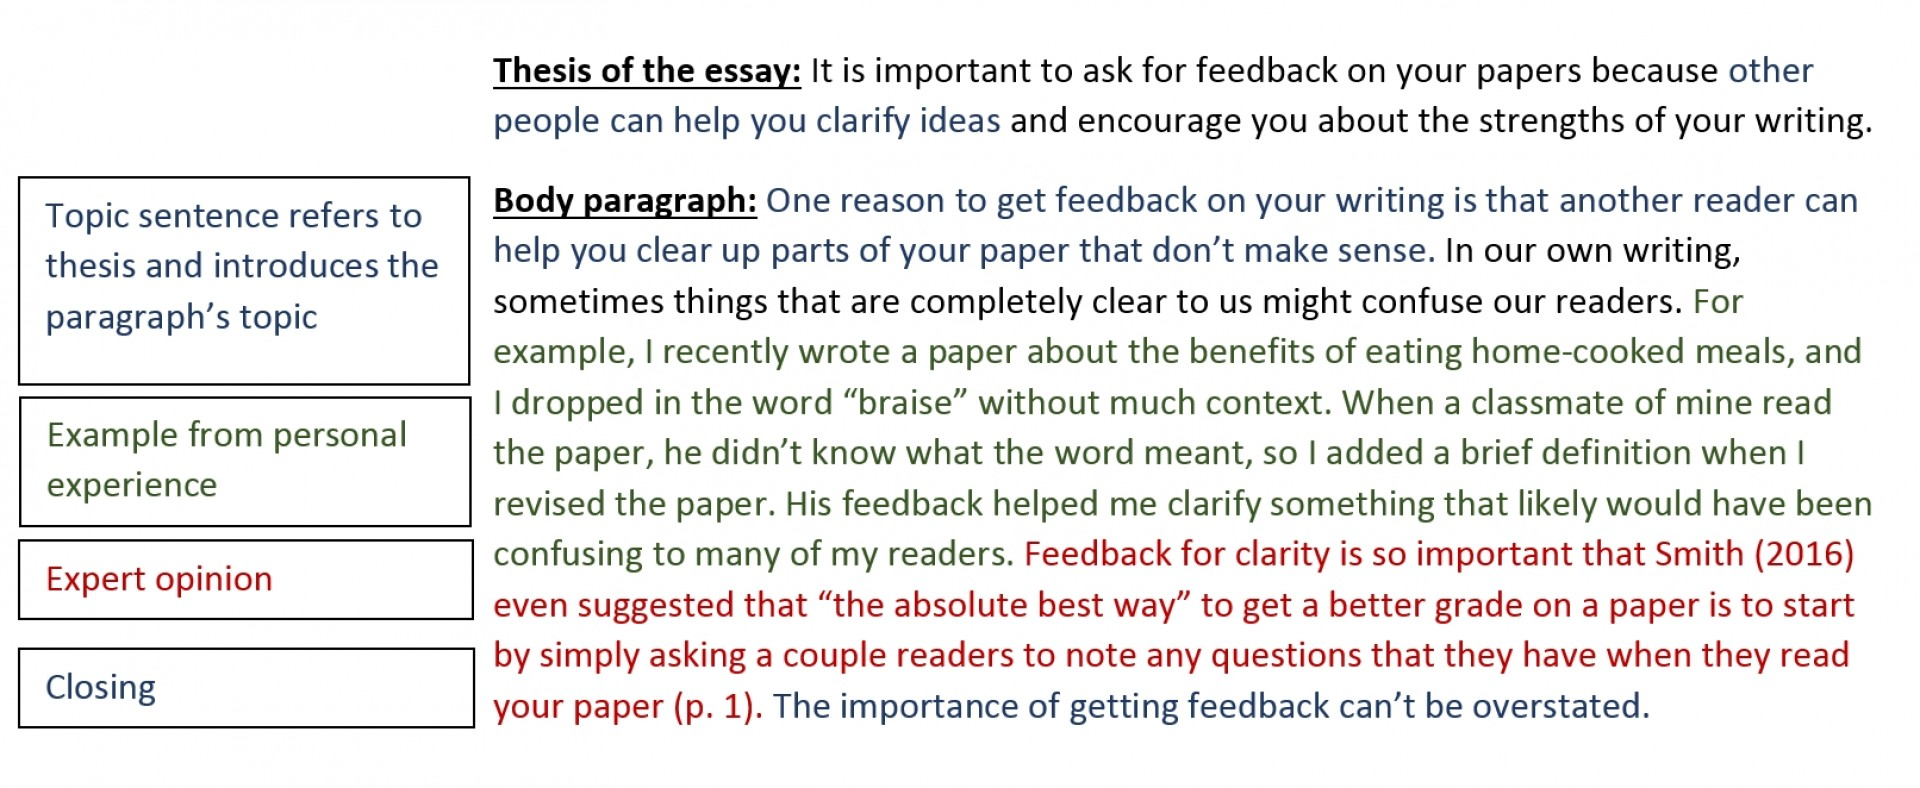 022 Body Paragraphs Writing Your Paper Research Guides At Eastern Inside Paragraph Examples Conclusion Example Unusual For Pdf 1920